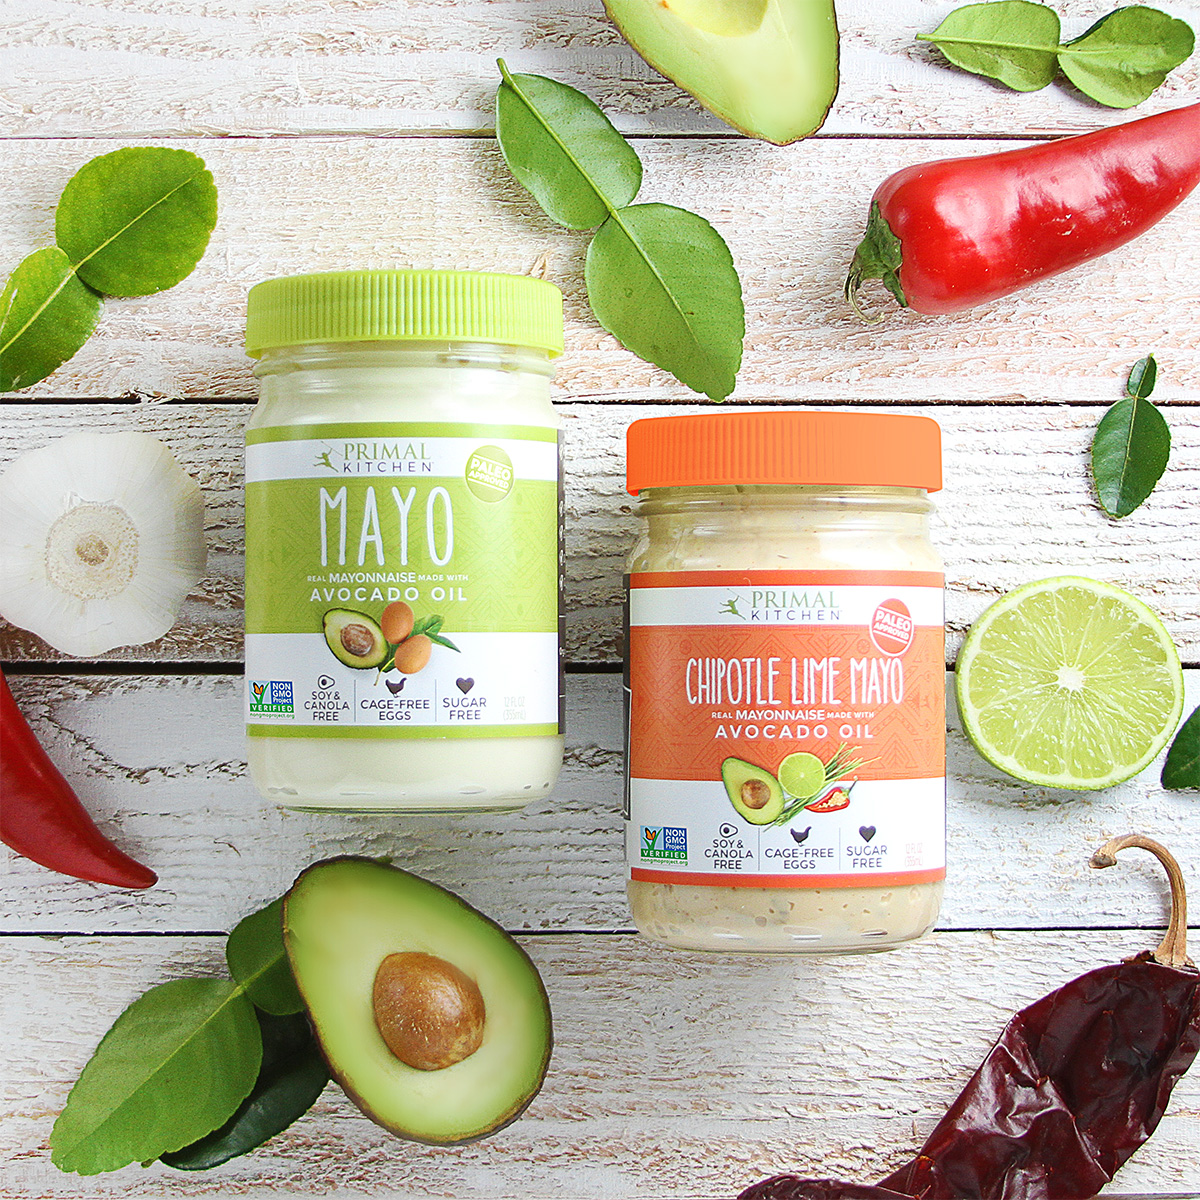 Primal Kitchen Chipotle Lime Mayo Share Your Success Story Win A Year's Supply Of Primal Kitchen